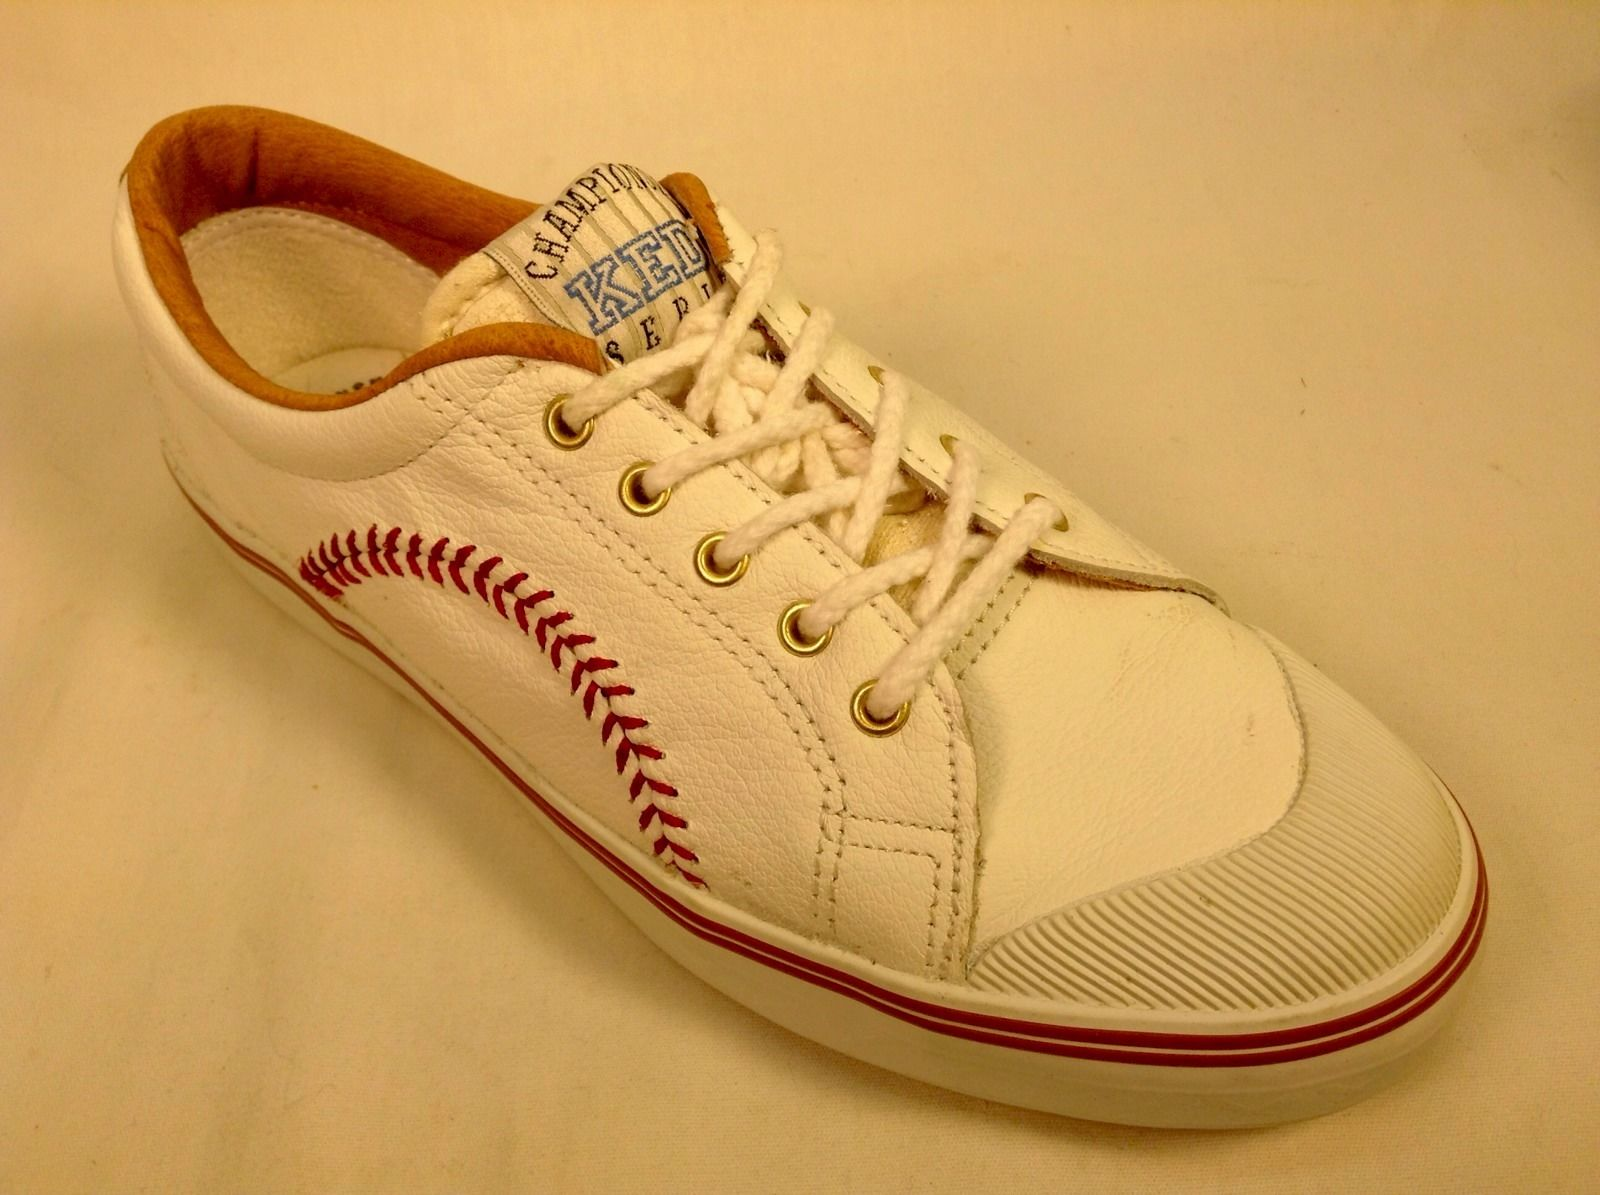 2daac925c8326 Vintage 1992 Keds Championship Series White Leather Baseball Shoes Size 7M